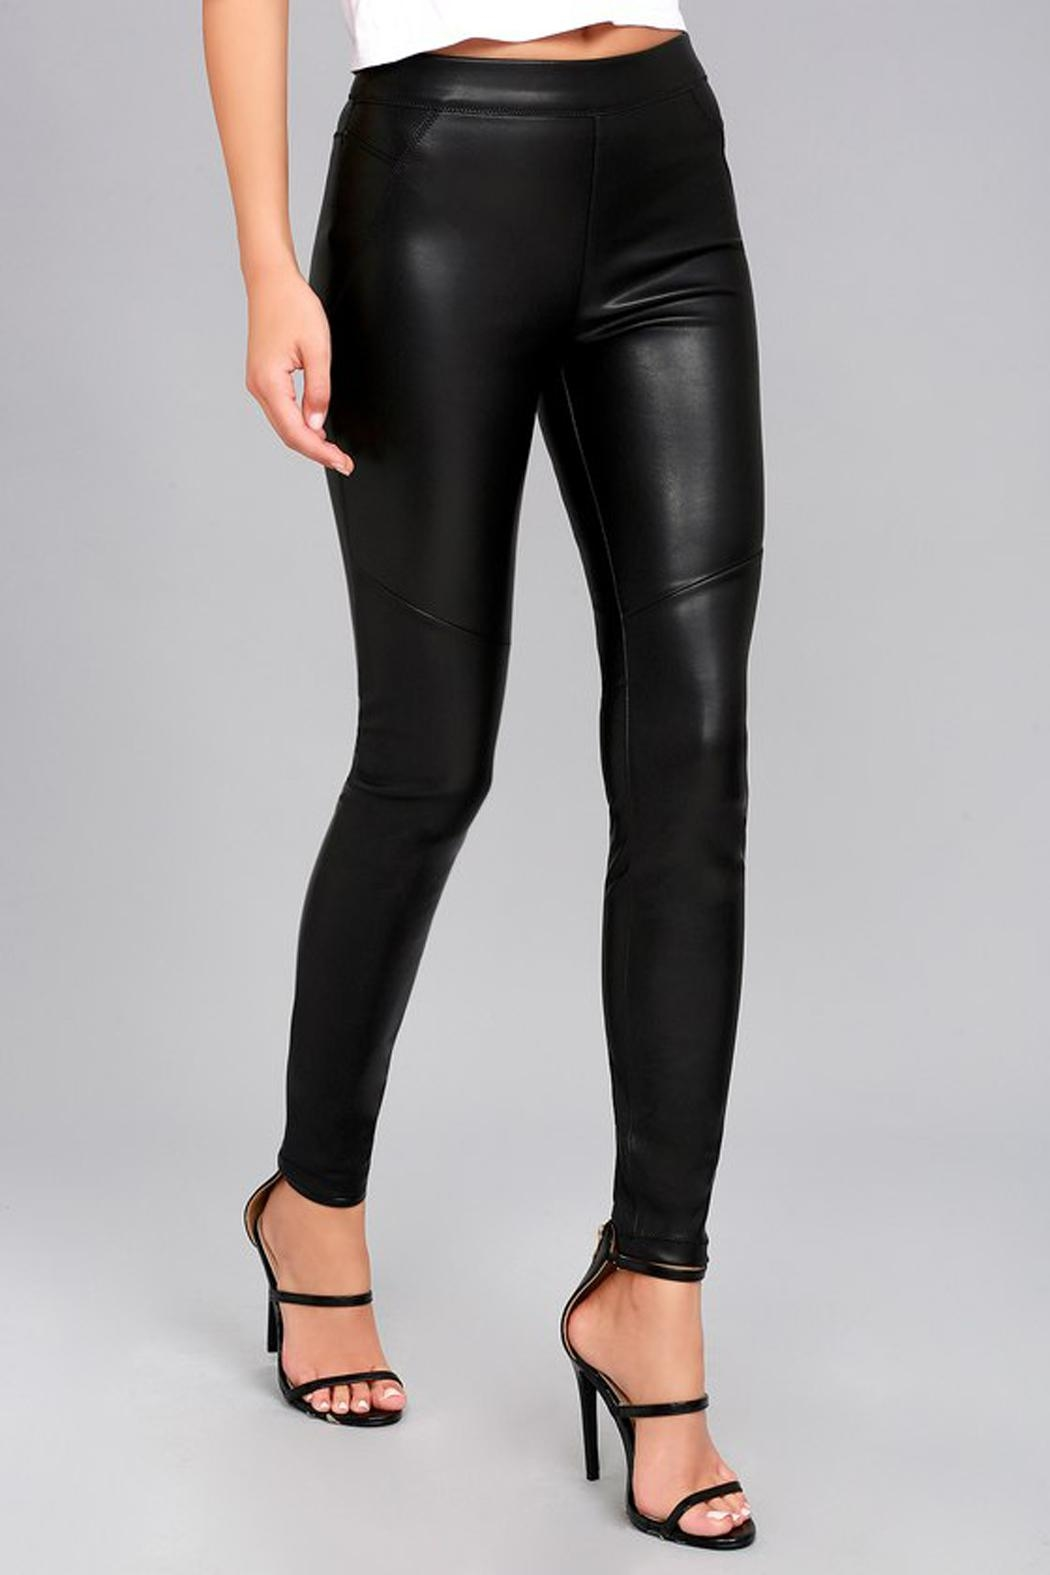 Free People Leatherette Legging - Side Cropped Image